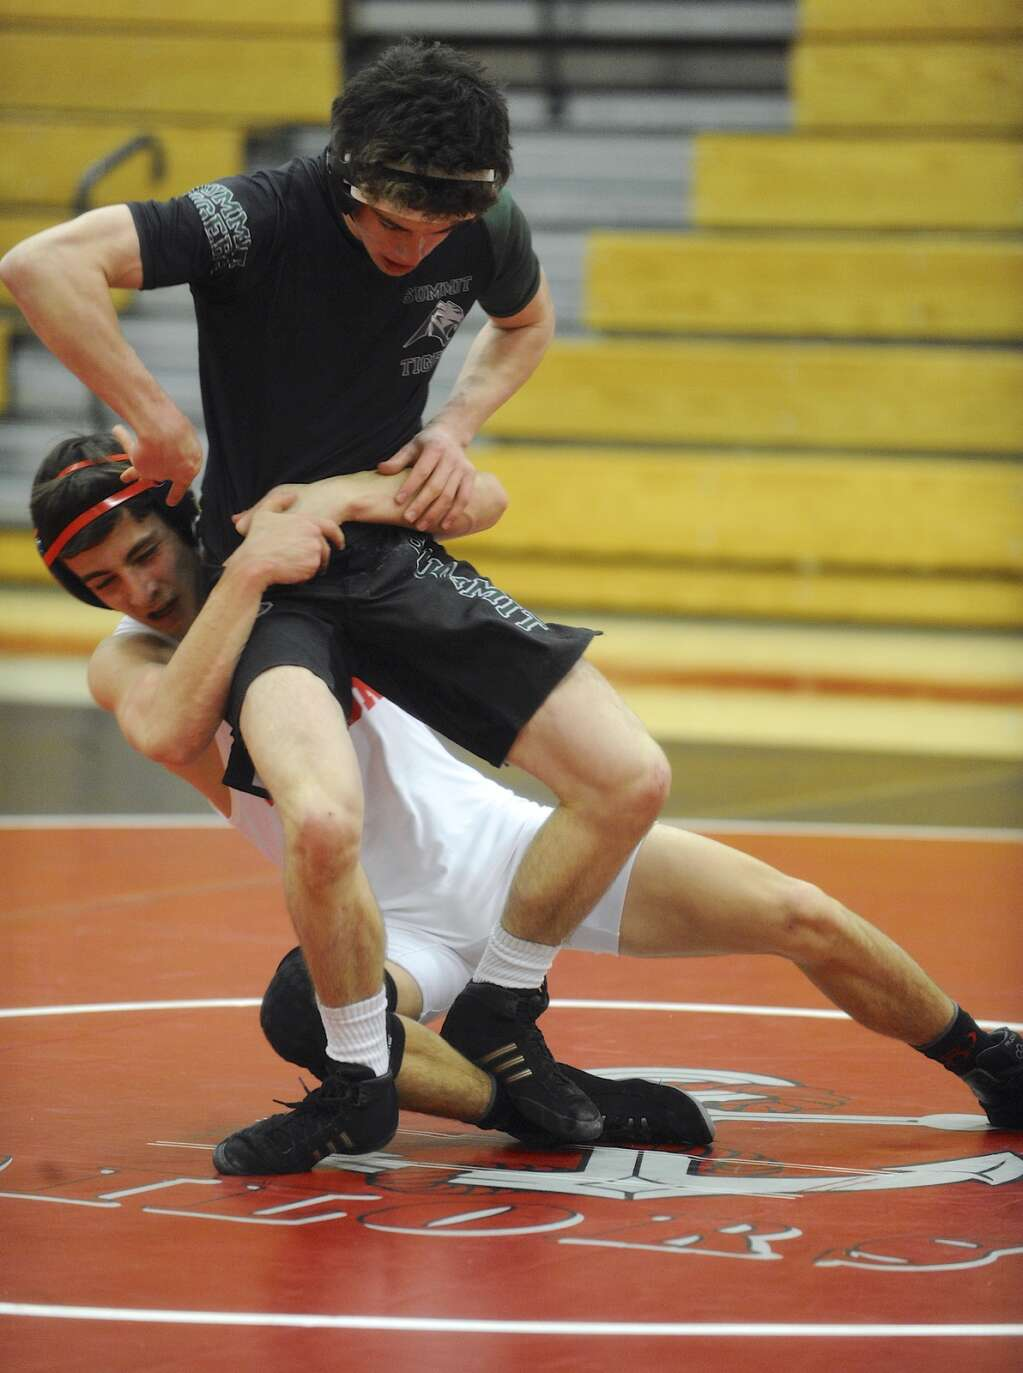 Summit's Aidan Collins dropped a 16-13 decision to Leonardo Meraz in a dual against Glenwood Springs in Steamboat Springs on Thursday. | Photo by Shelby Reardon / Steamboat Pilot & Today